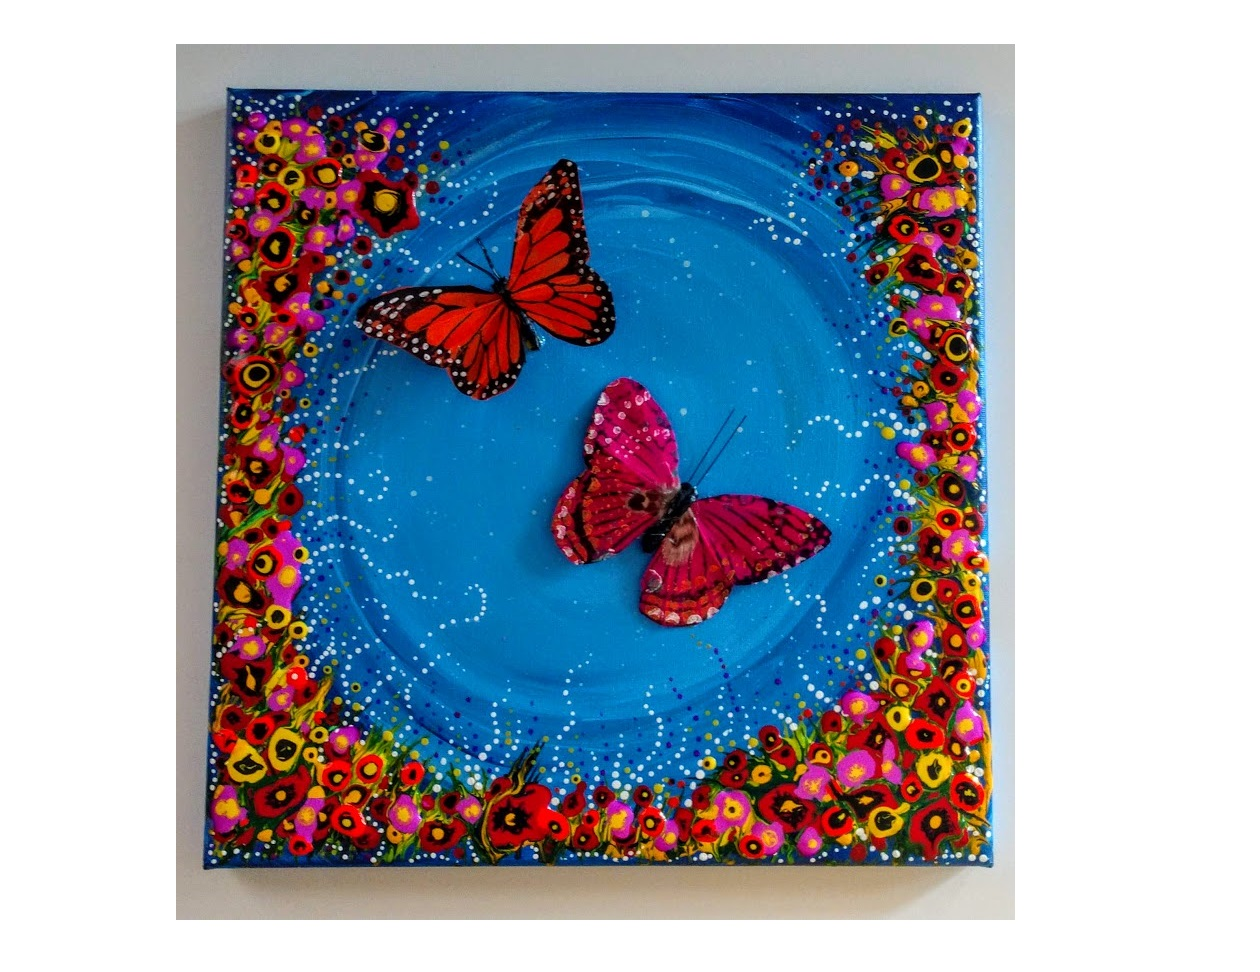 """12X12 $40 BLUES """"FLY ME TO THE MOON""""   DRIPPING DOTS & MANDALA"""